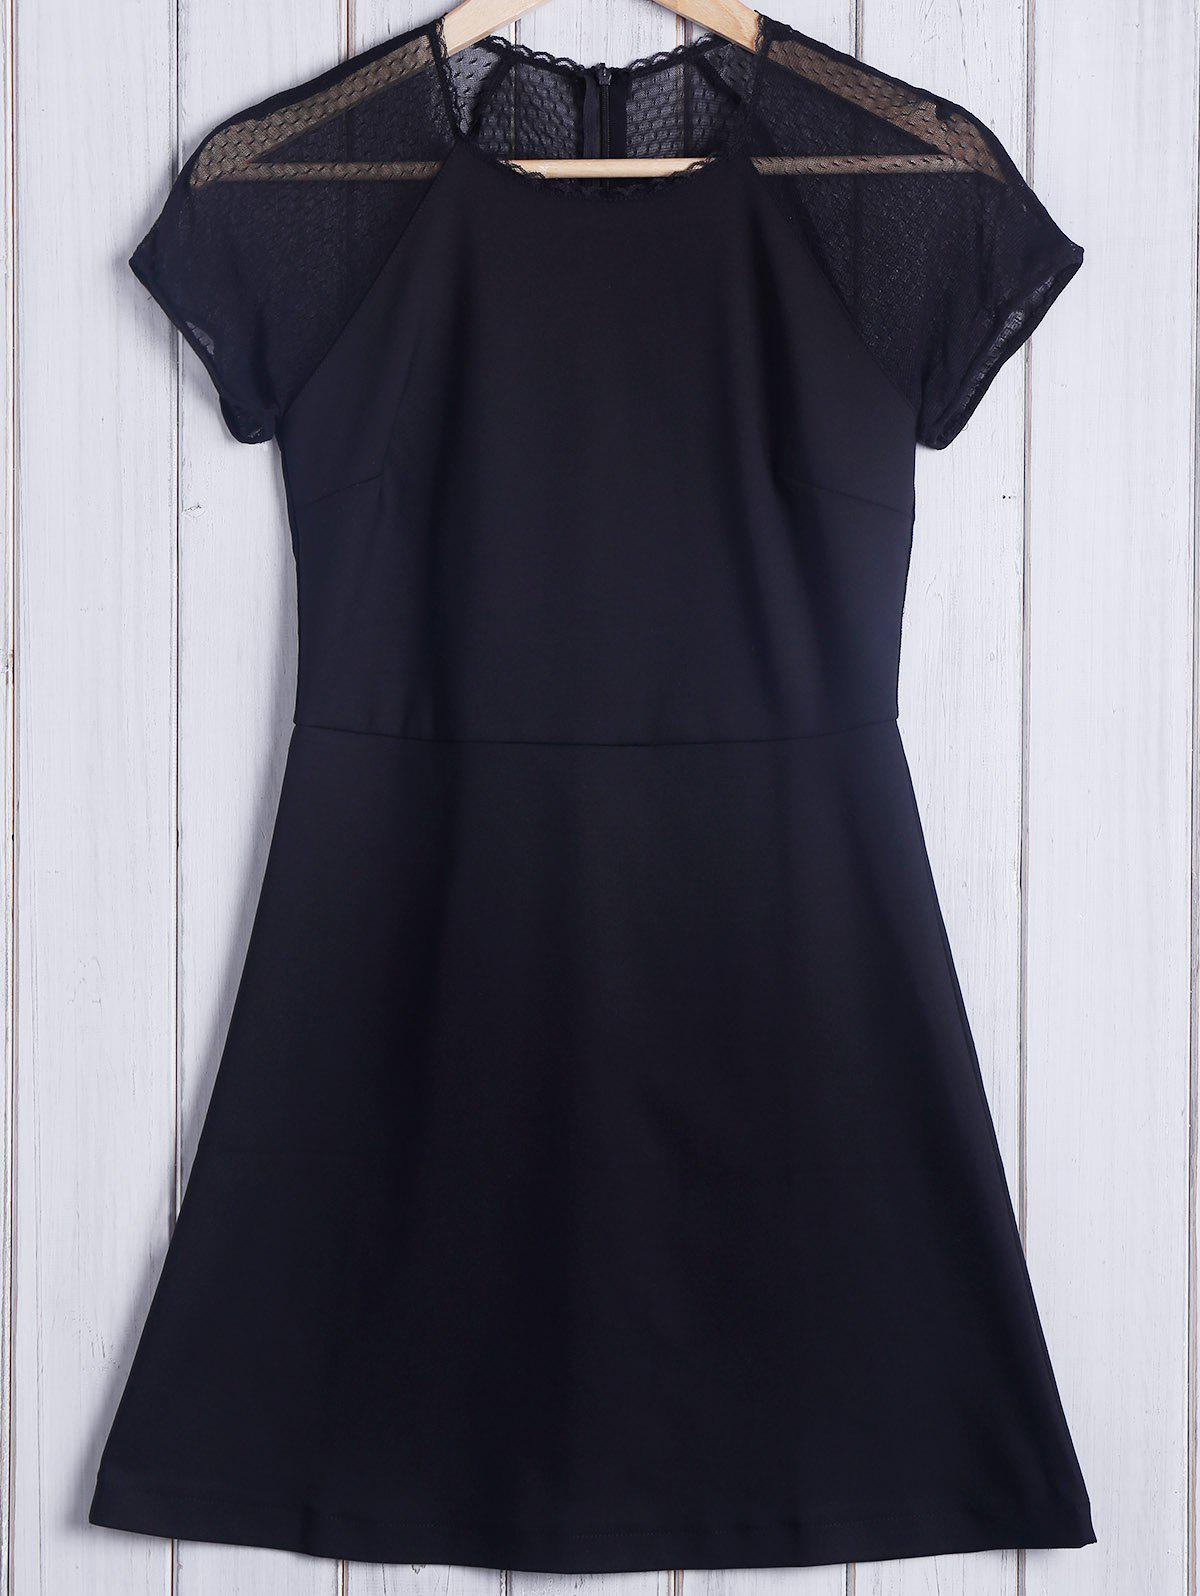 Trendy Short Sleeve Round Collar Pure Color Lace Spliced Women's Dress - BLACK M